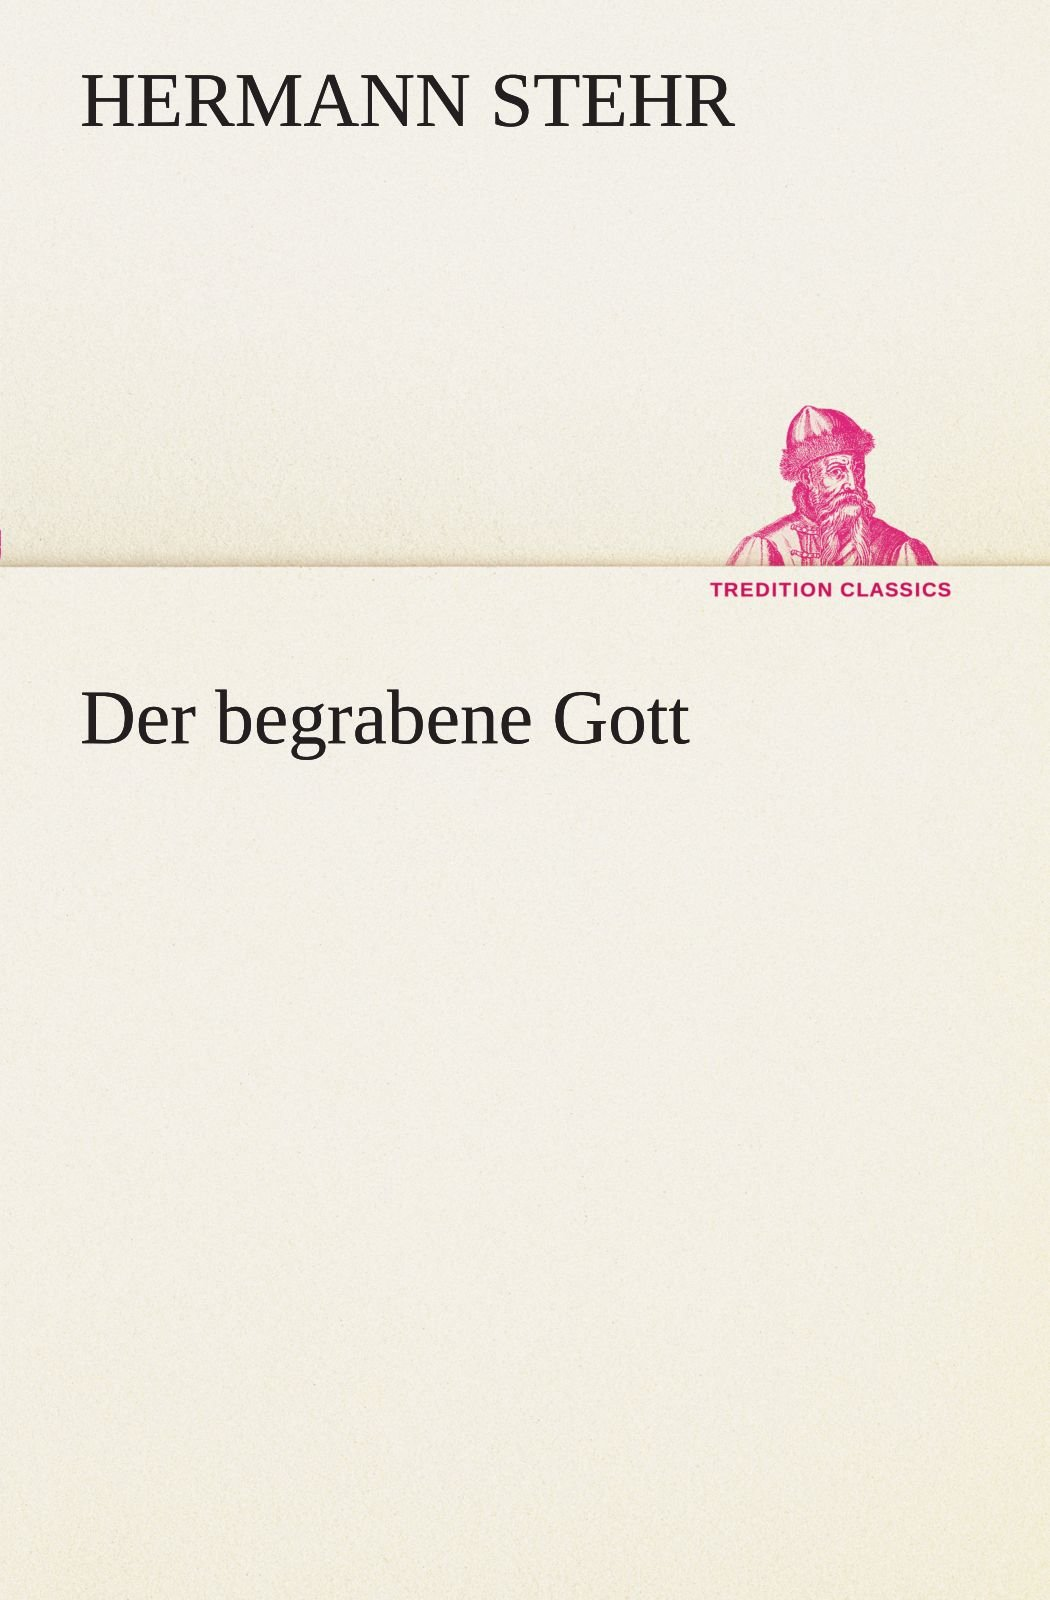 Der begrabene Gott (TREDITION CLASSICS) (German Edition) ePub fb2 book